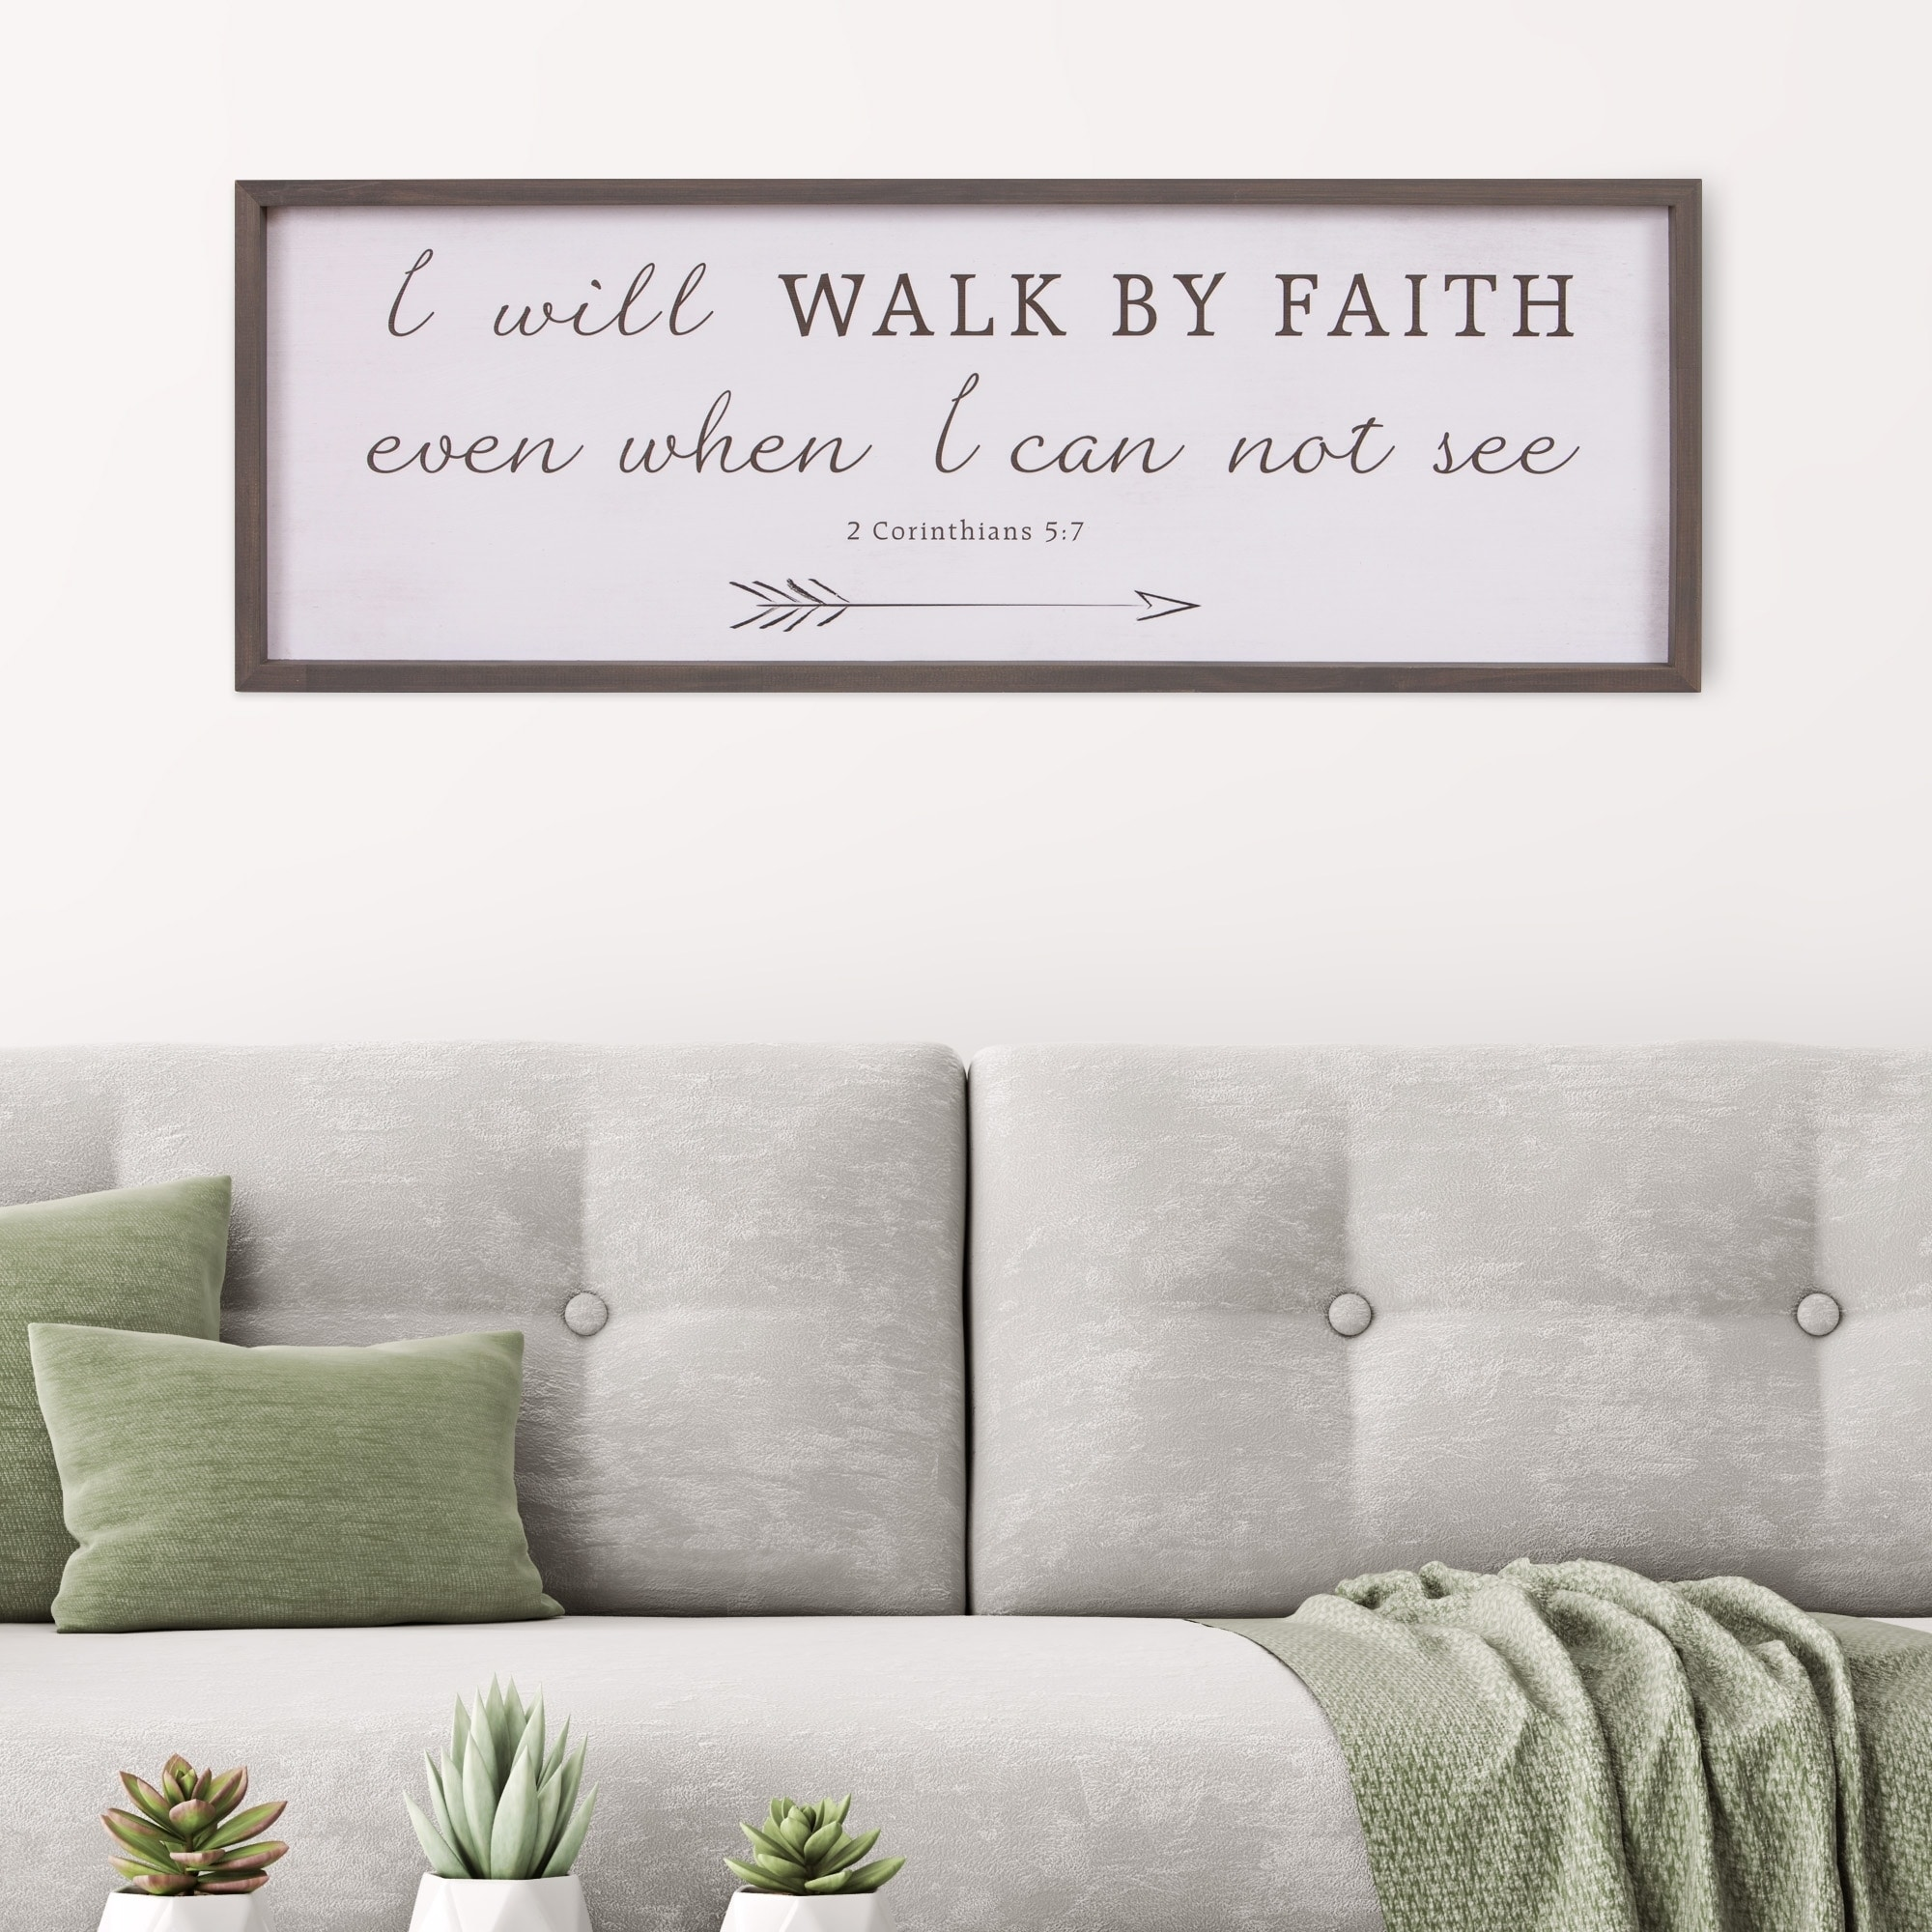 Shop patton wall decor walk by faith bible verse rustic wood framed wall art décor 12x36 white free shipping today overstock 24081195